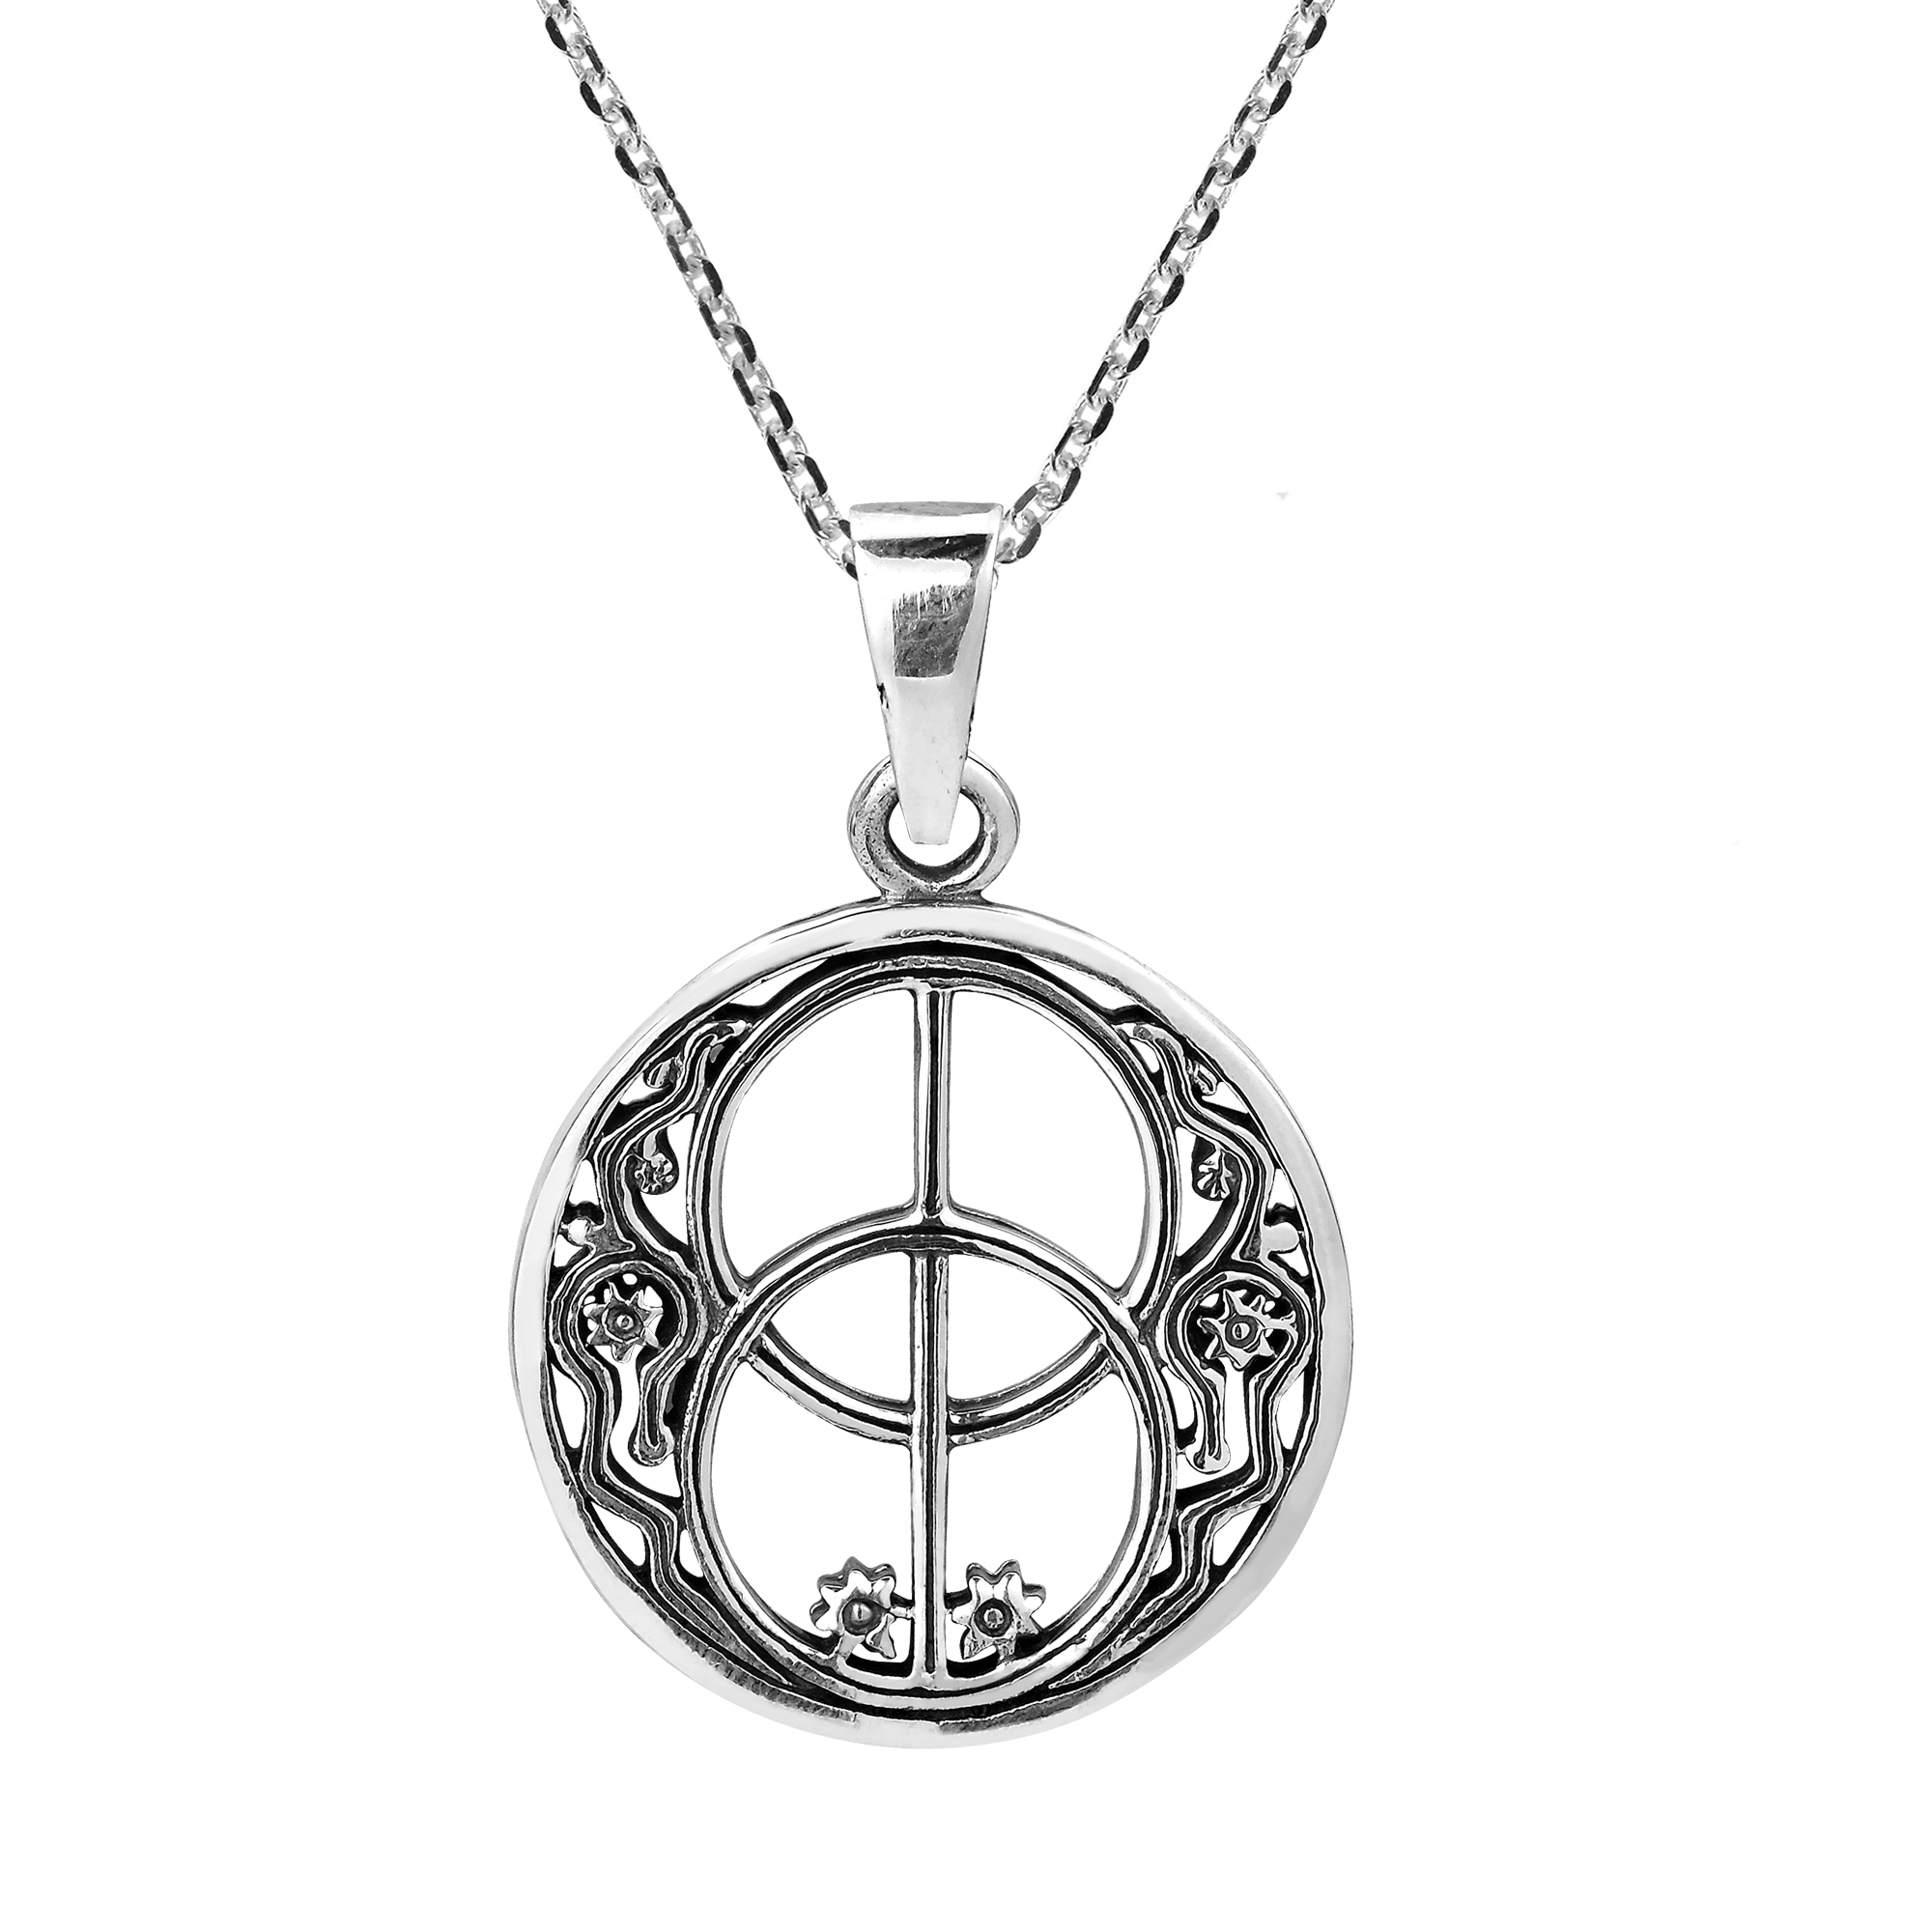 plated onyx pendant jewelry necklaces products kabbalah spheres tree with mdl ahuva life gold spiritual collections of pendants the